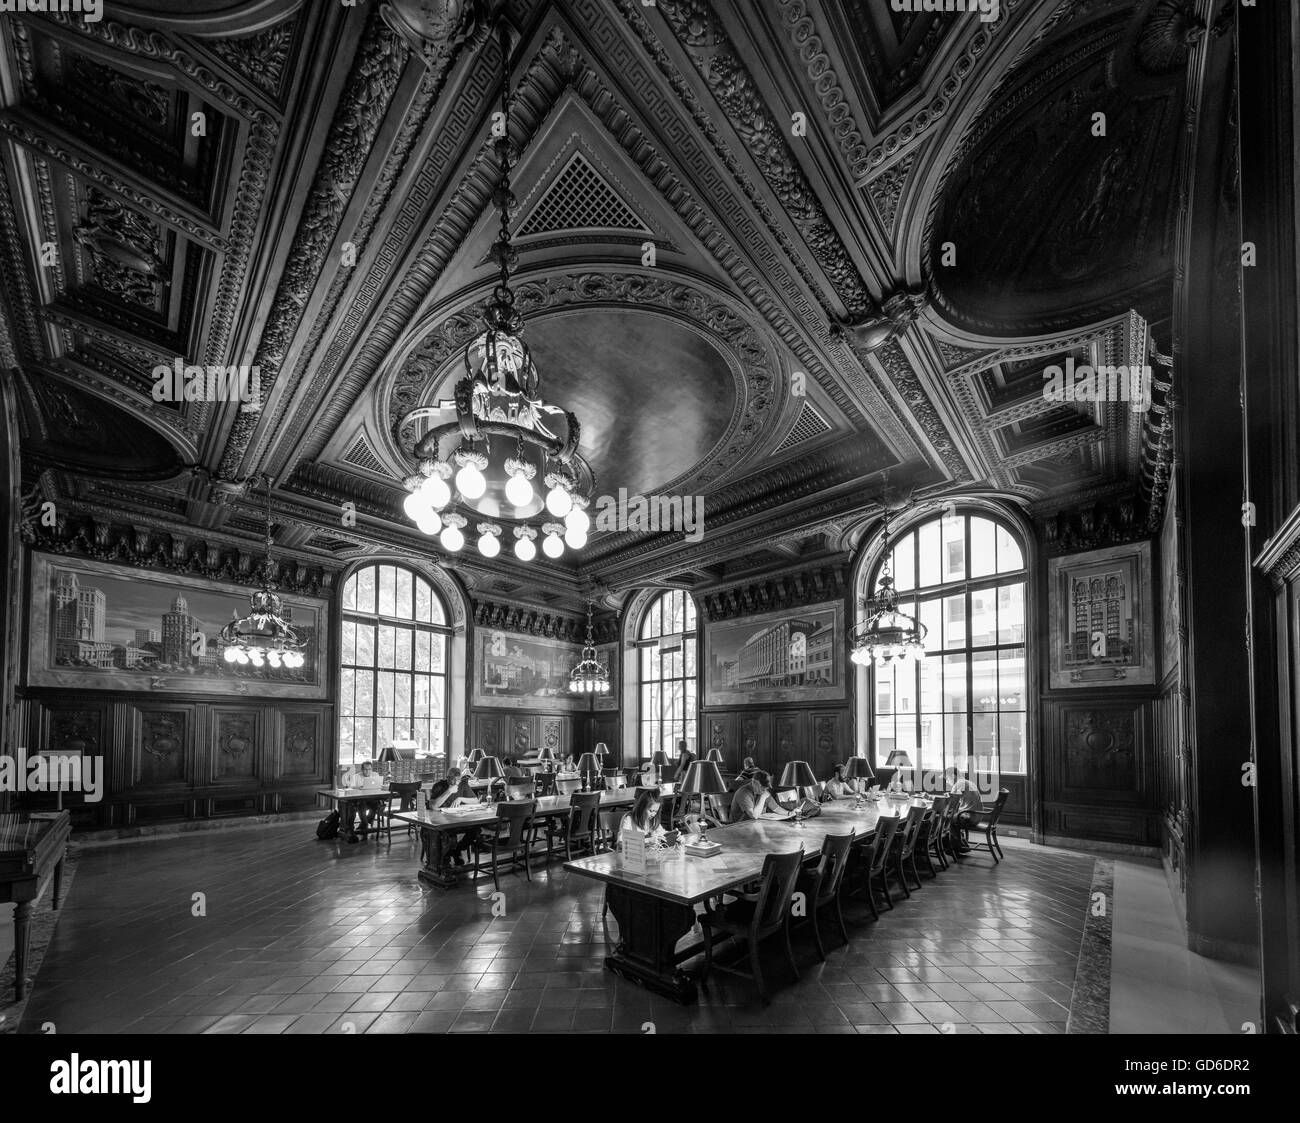 The New York Public Library (NYPL) is a public library system in New York City. - Stock Image